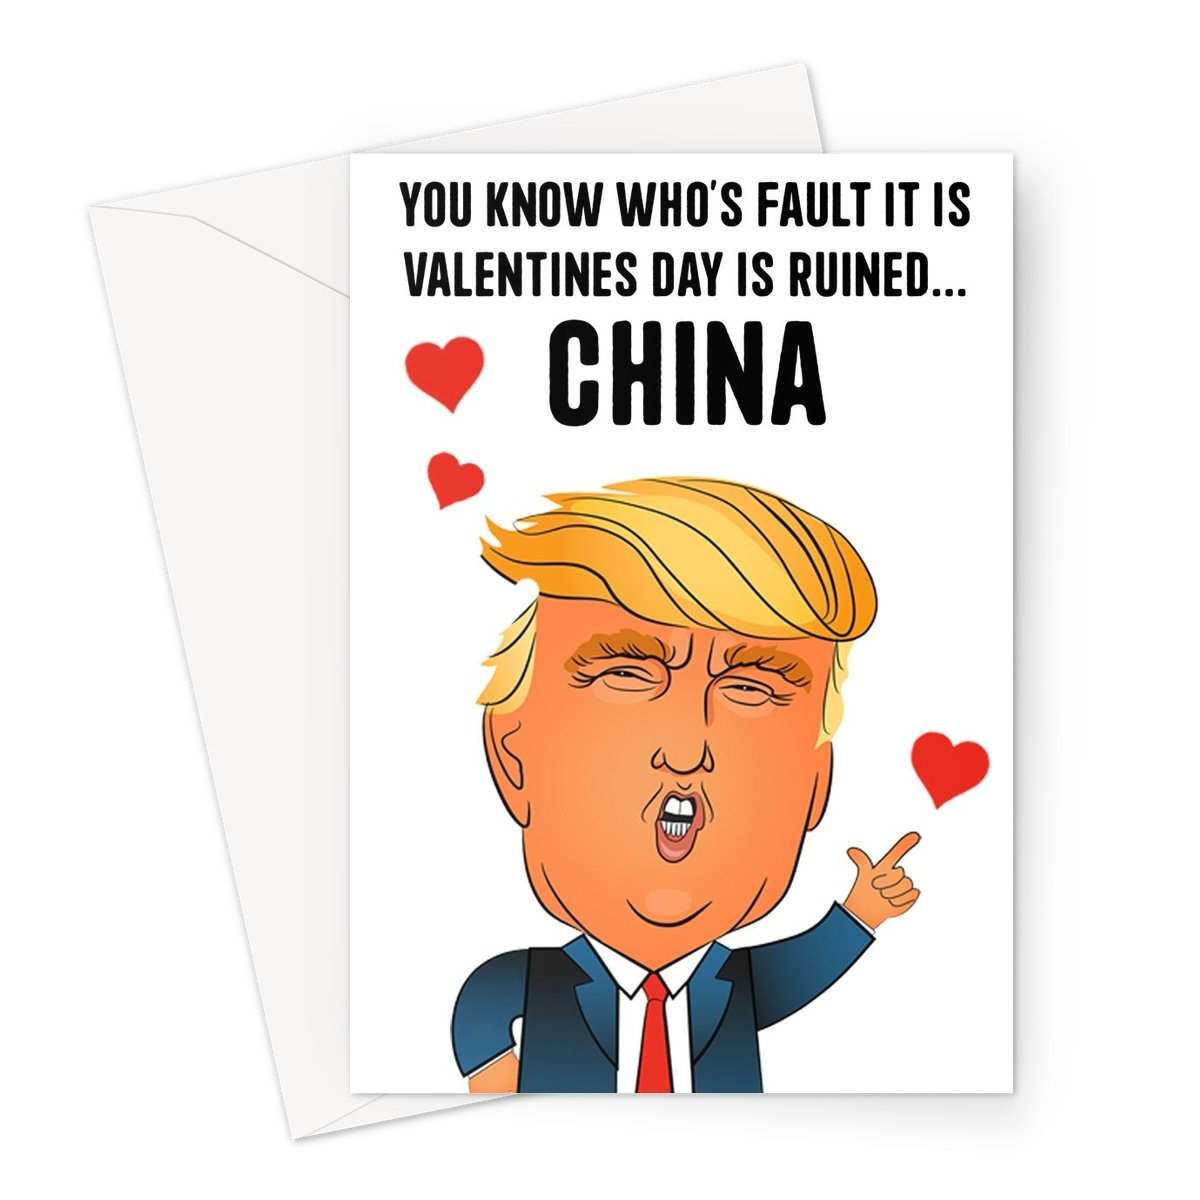 It's China Fault!! Valentine's Cards